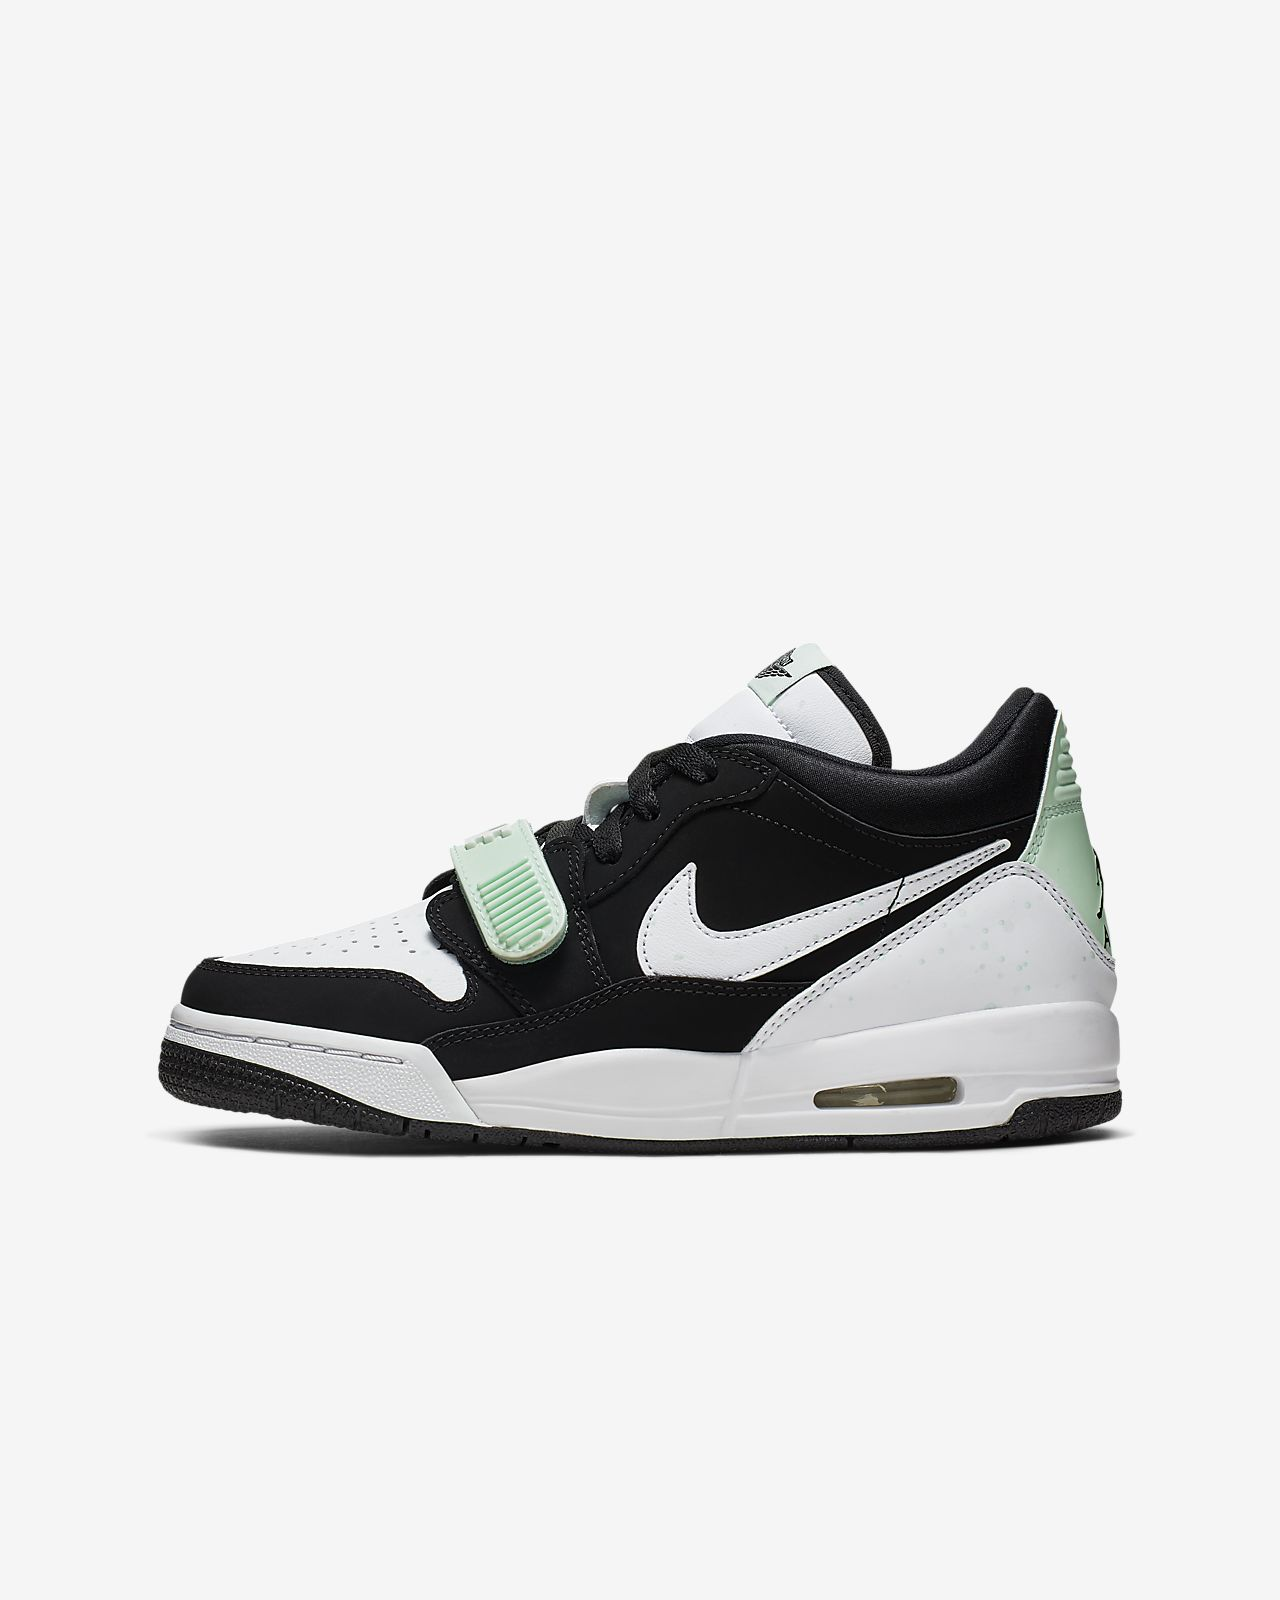 timeless design d4ce3 c0ce6 Air Jordan Legacy 312 Low SE Big Kids' Shoe